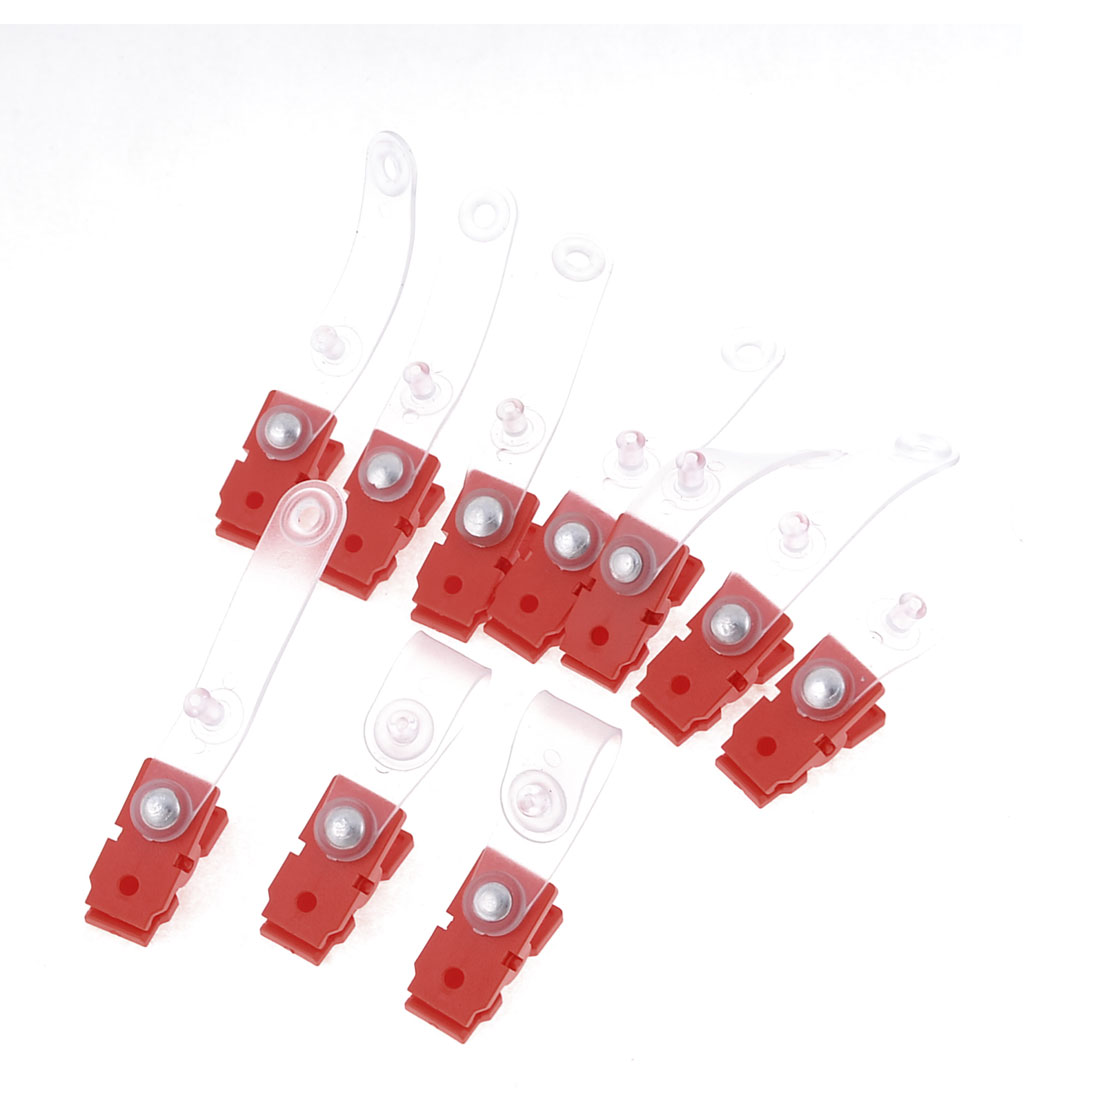 10 Pcs Office ID Card Name Tag Holder Badge Strap Clip Red Clear